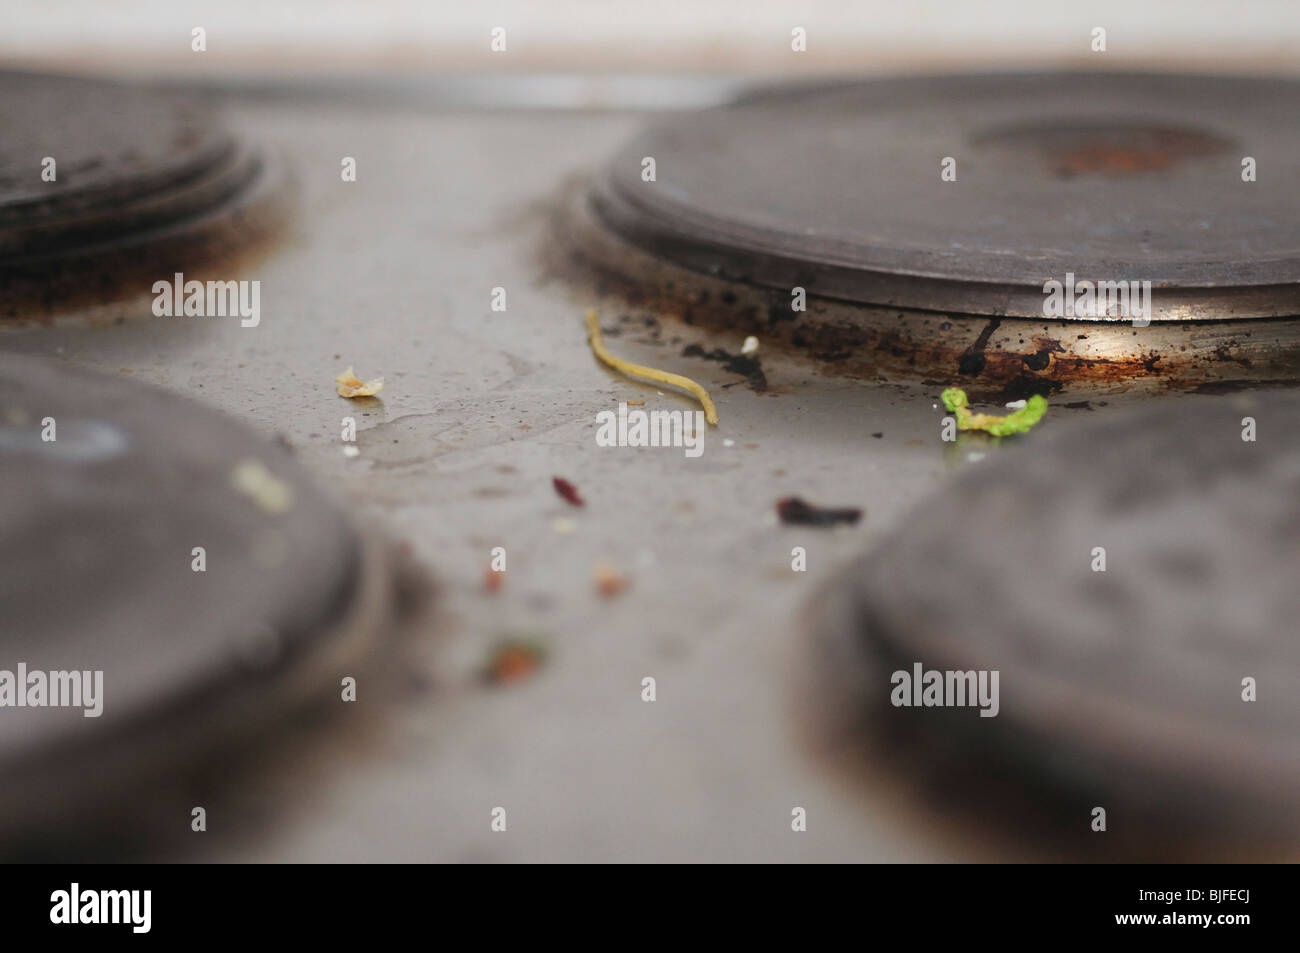 Close up of dirty electric Ceramic cooker hob - Stock Image